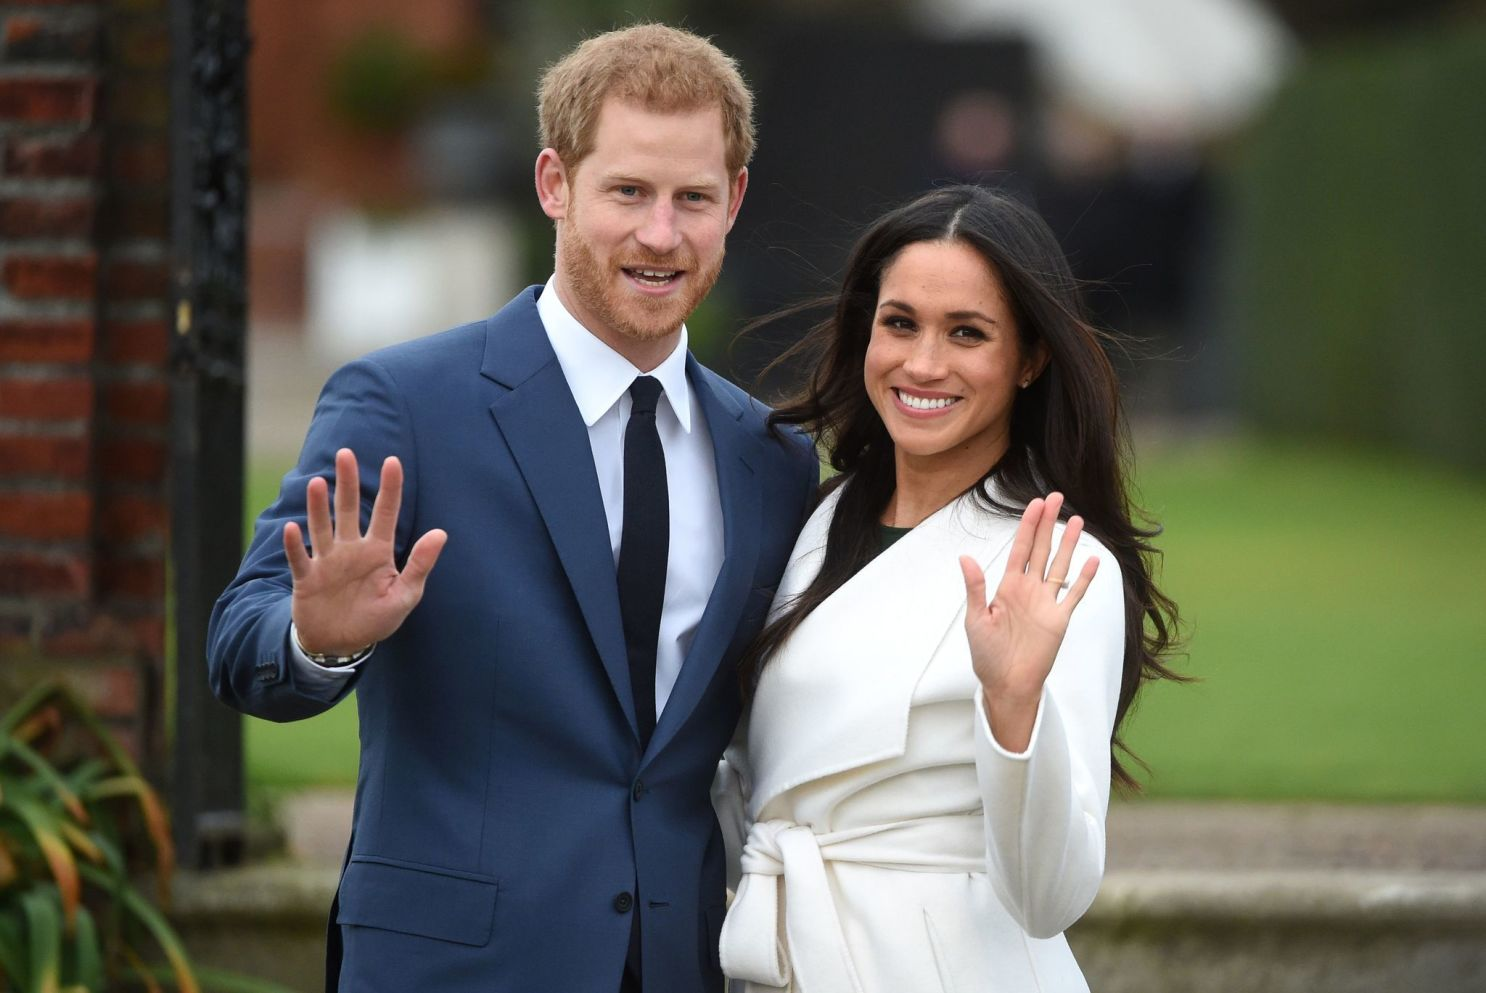 Prince Harry and Meghan Markle move into Tyler Perry's $18M mansion